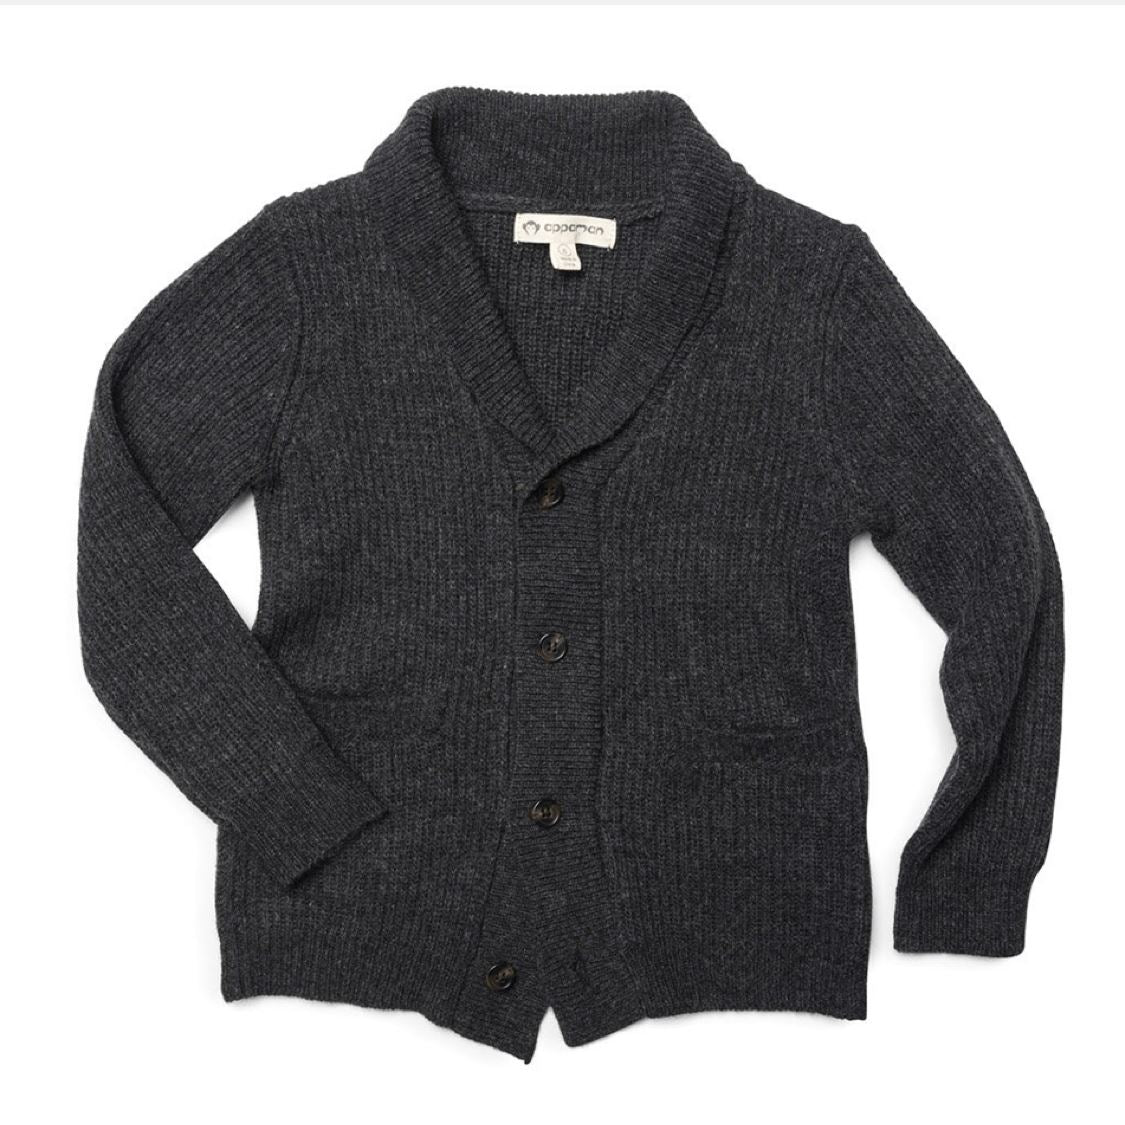 U1SC Appaman Charcoal Heather Shelby Cardigan Sweater Appaman